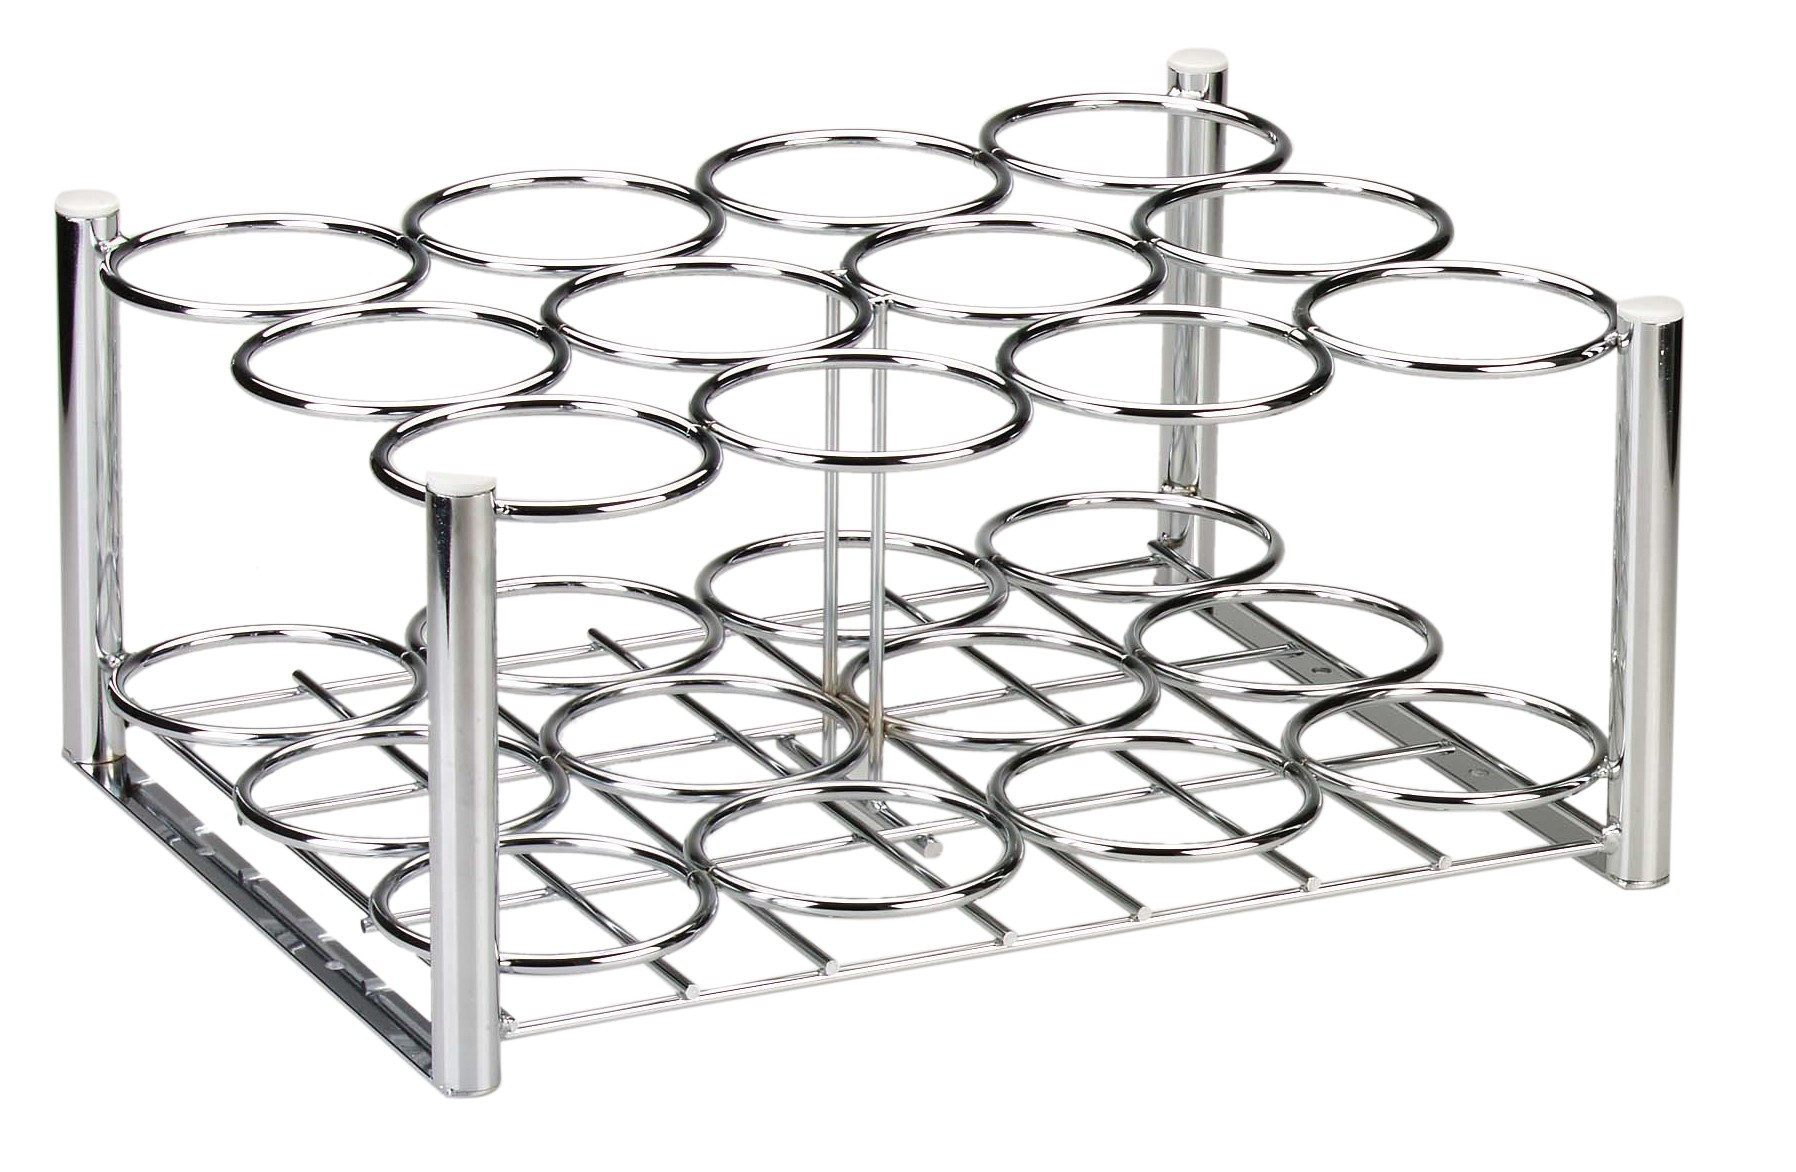 Drive DeVilbiss Healthcare Steel Oxygen Cylinder Rack, M6 Cylinders Only, 12 Cylinders